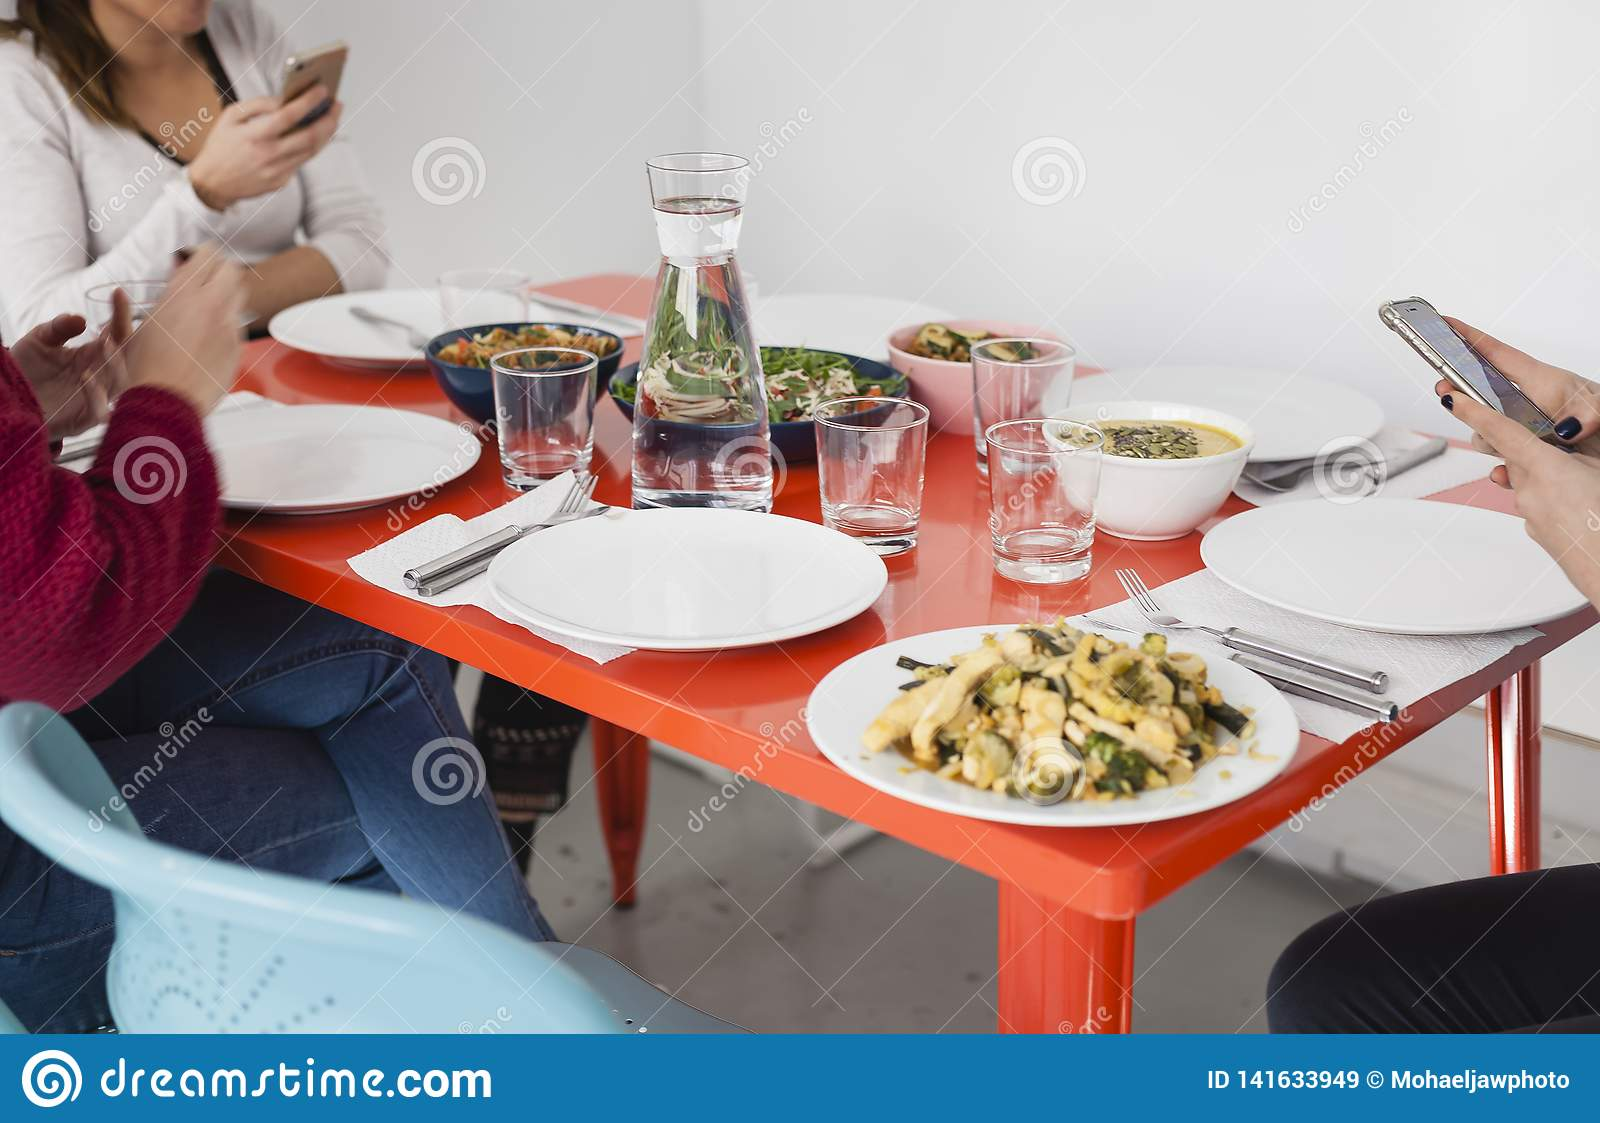 Smartphone using on the dinner table.